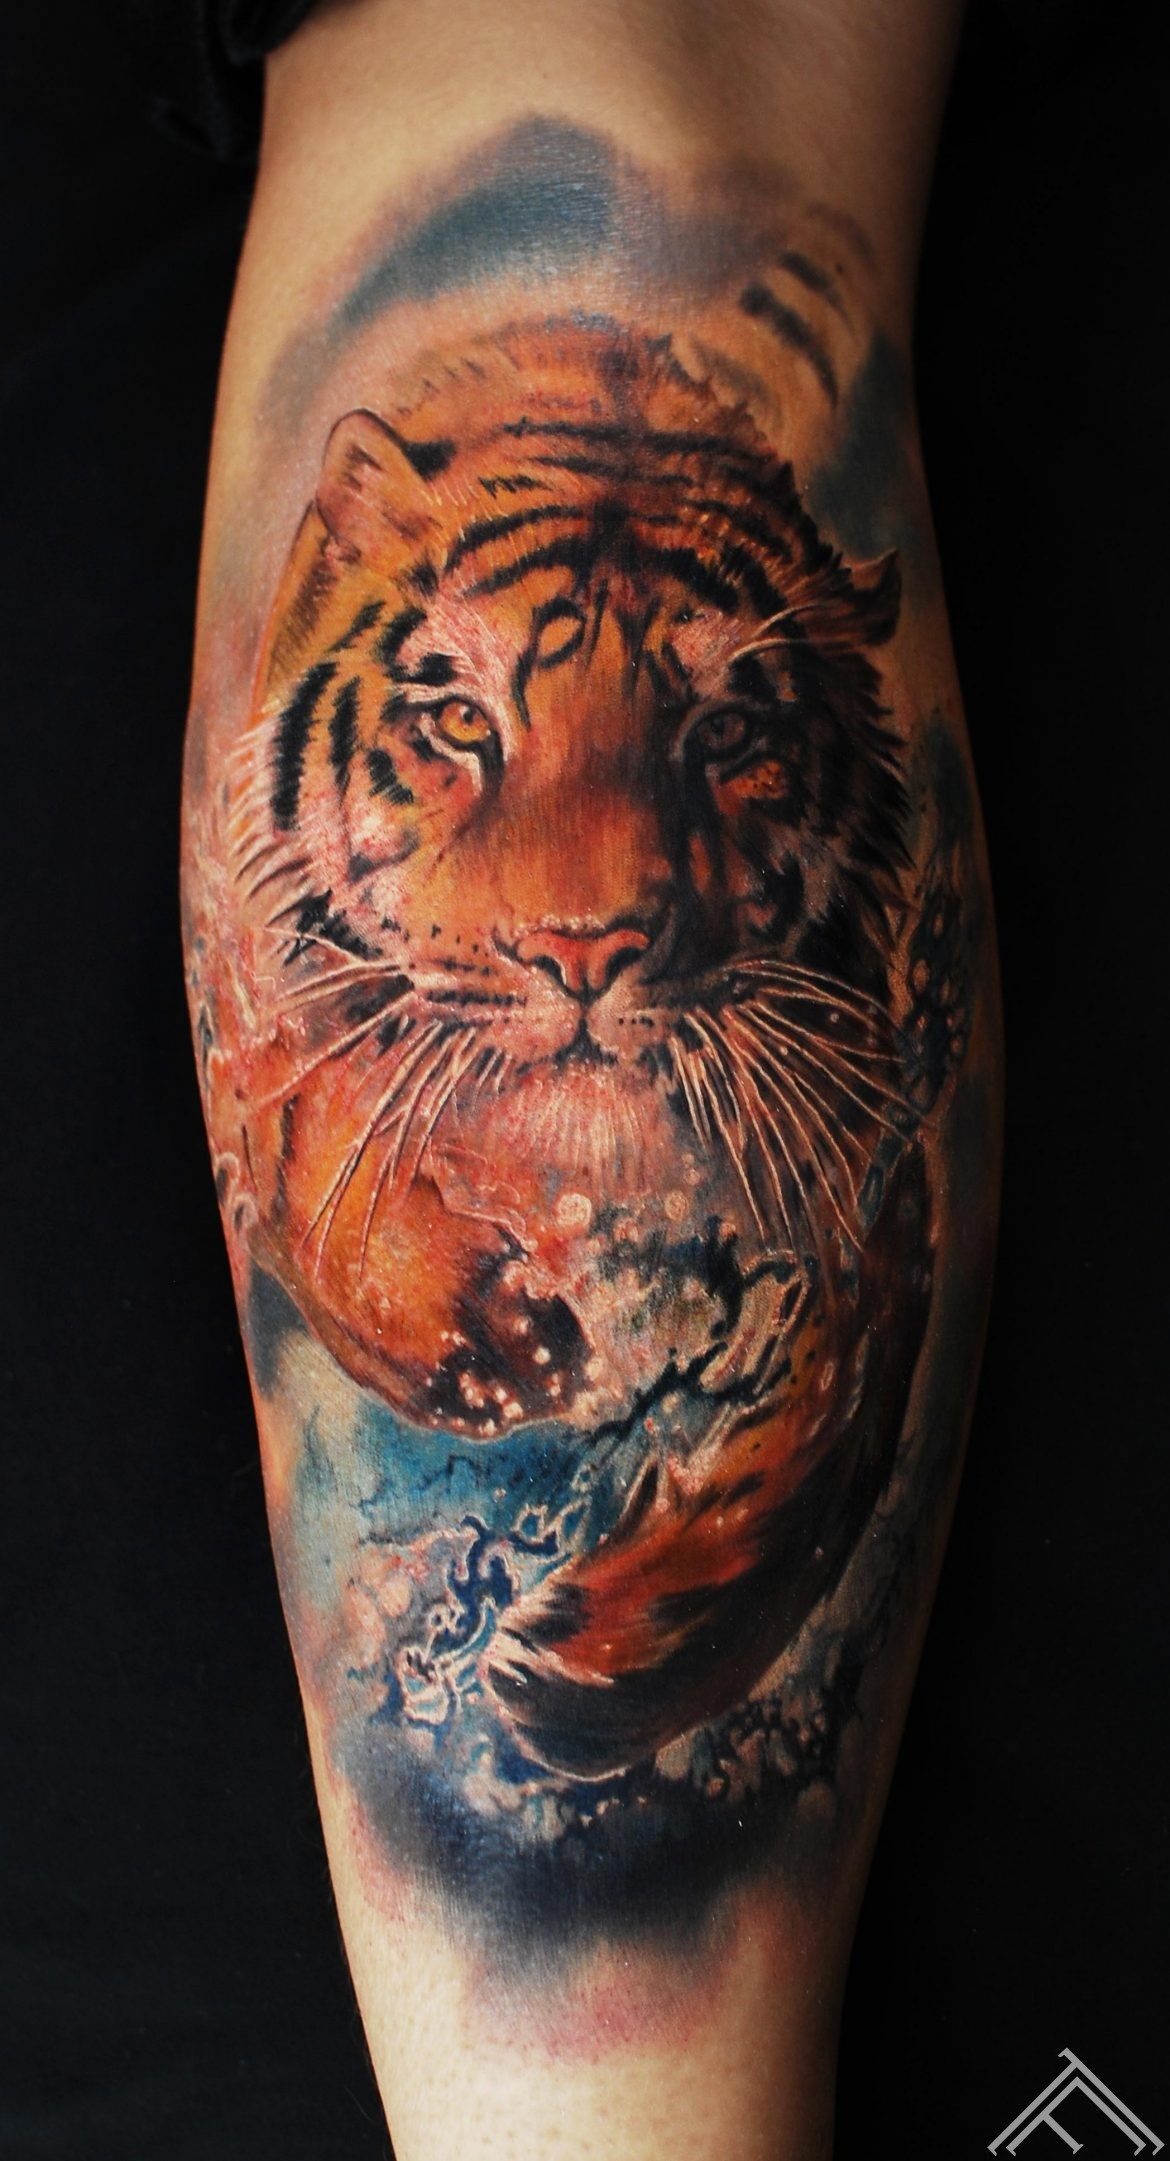 marispavlo-tattoo-tattoofrequency-tiger-running-water-splash-art-amazing-nice-riga-portfolio